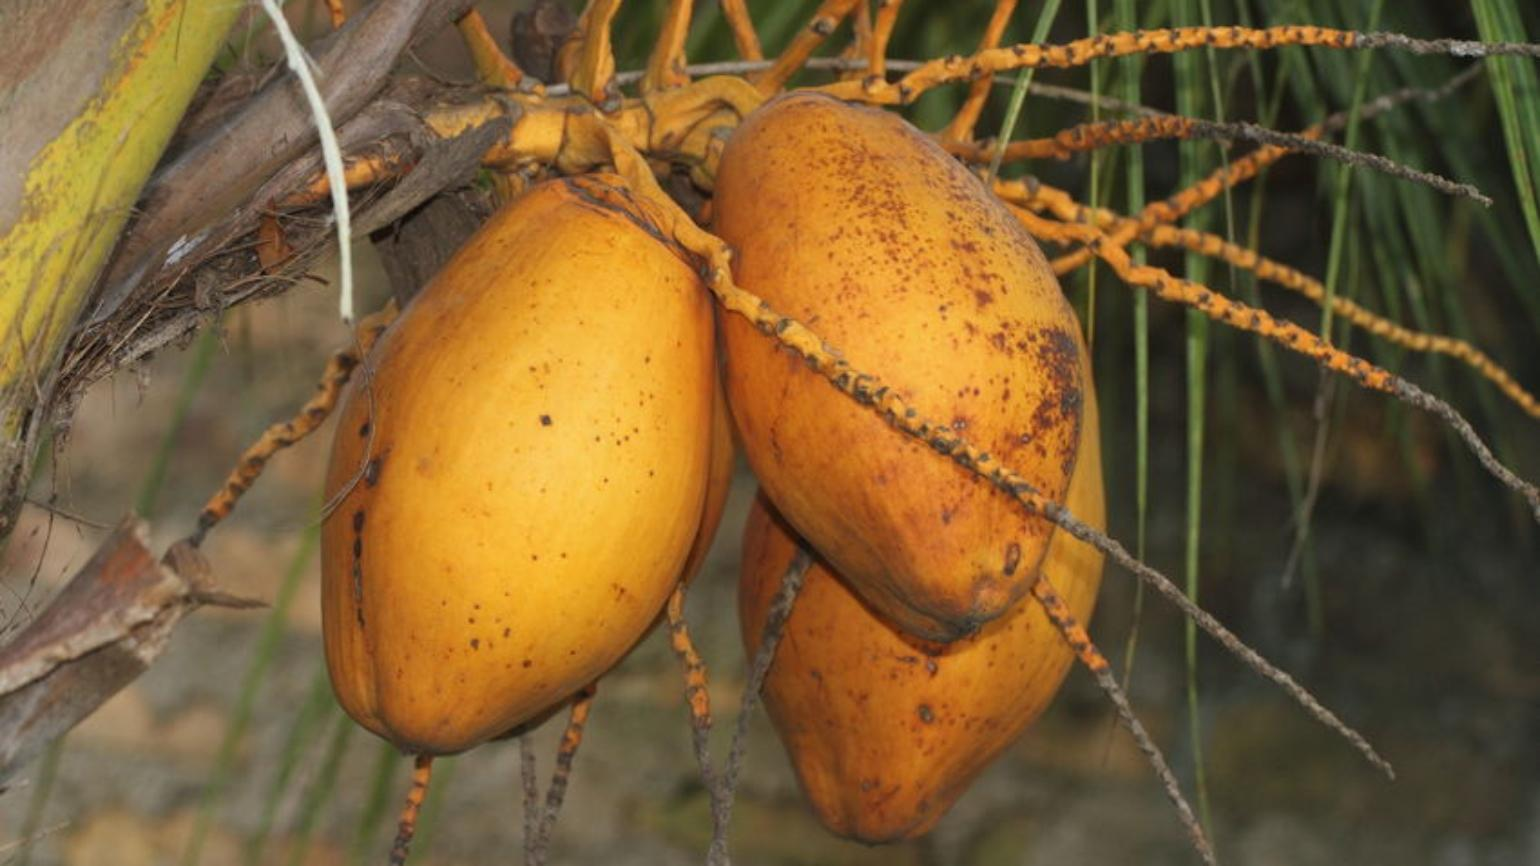 Rounded, yellow fruit of coconut palm